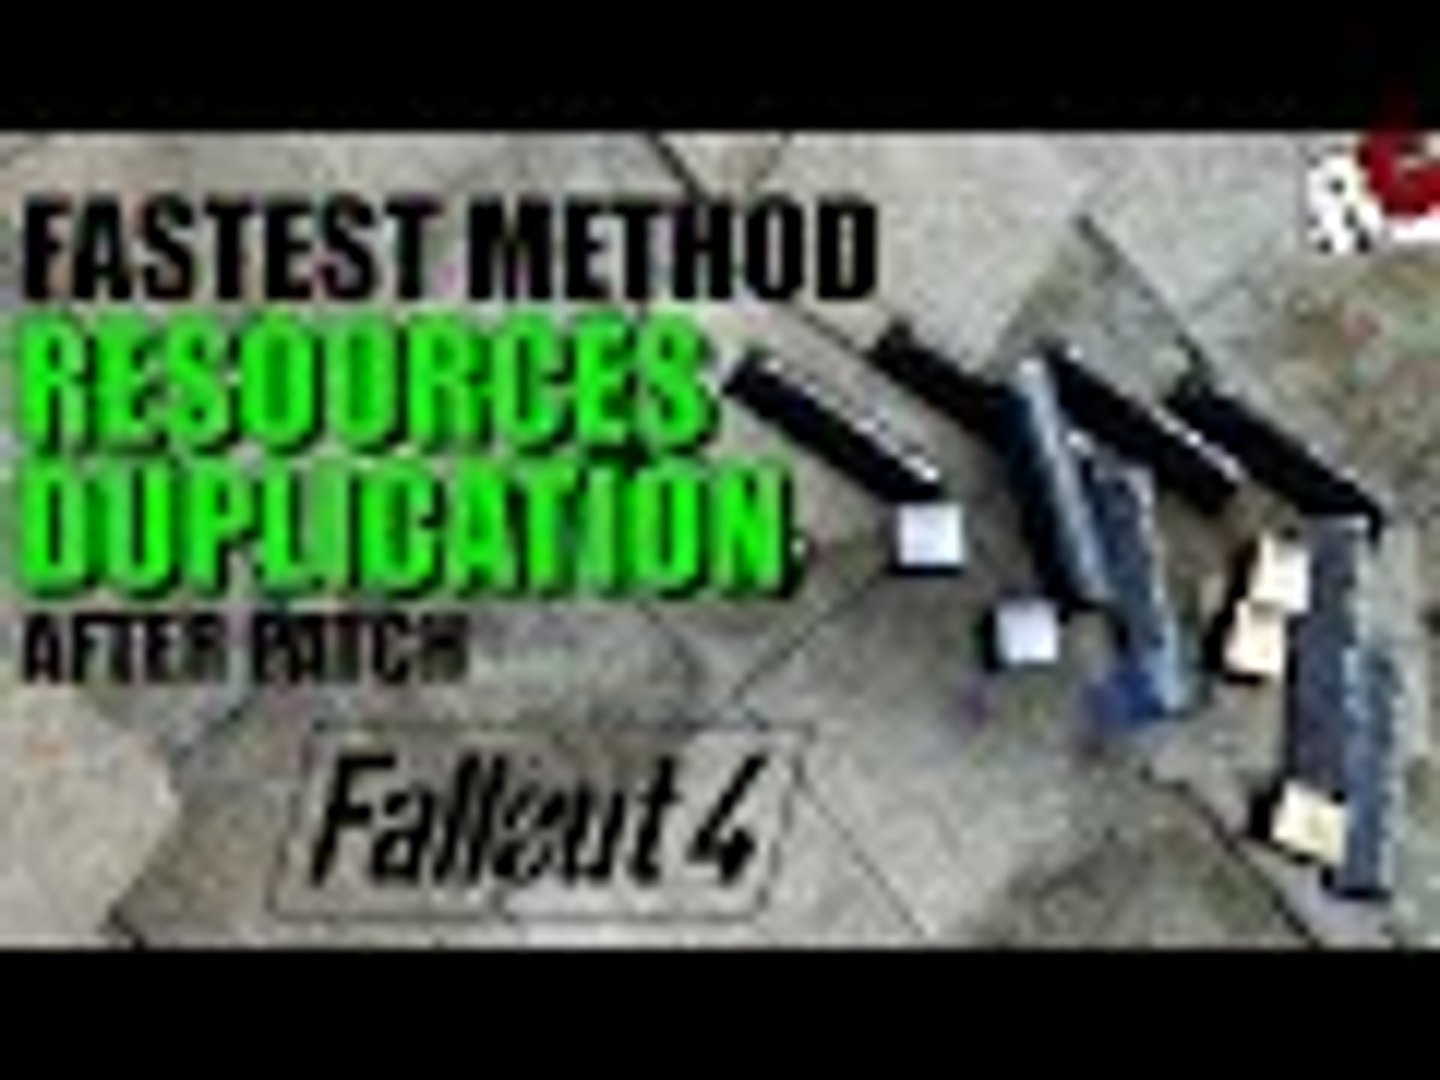 Fallout 4   How to Duplicate Resources FASTER After Patch - New Method!  (Fallout 4 Exploits)